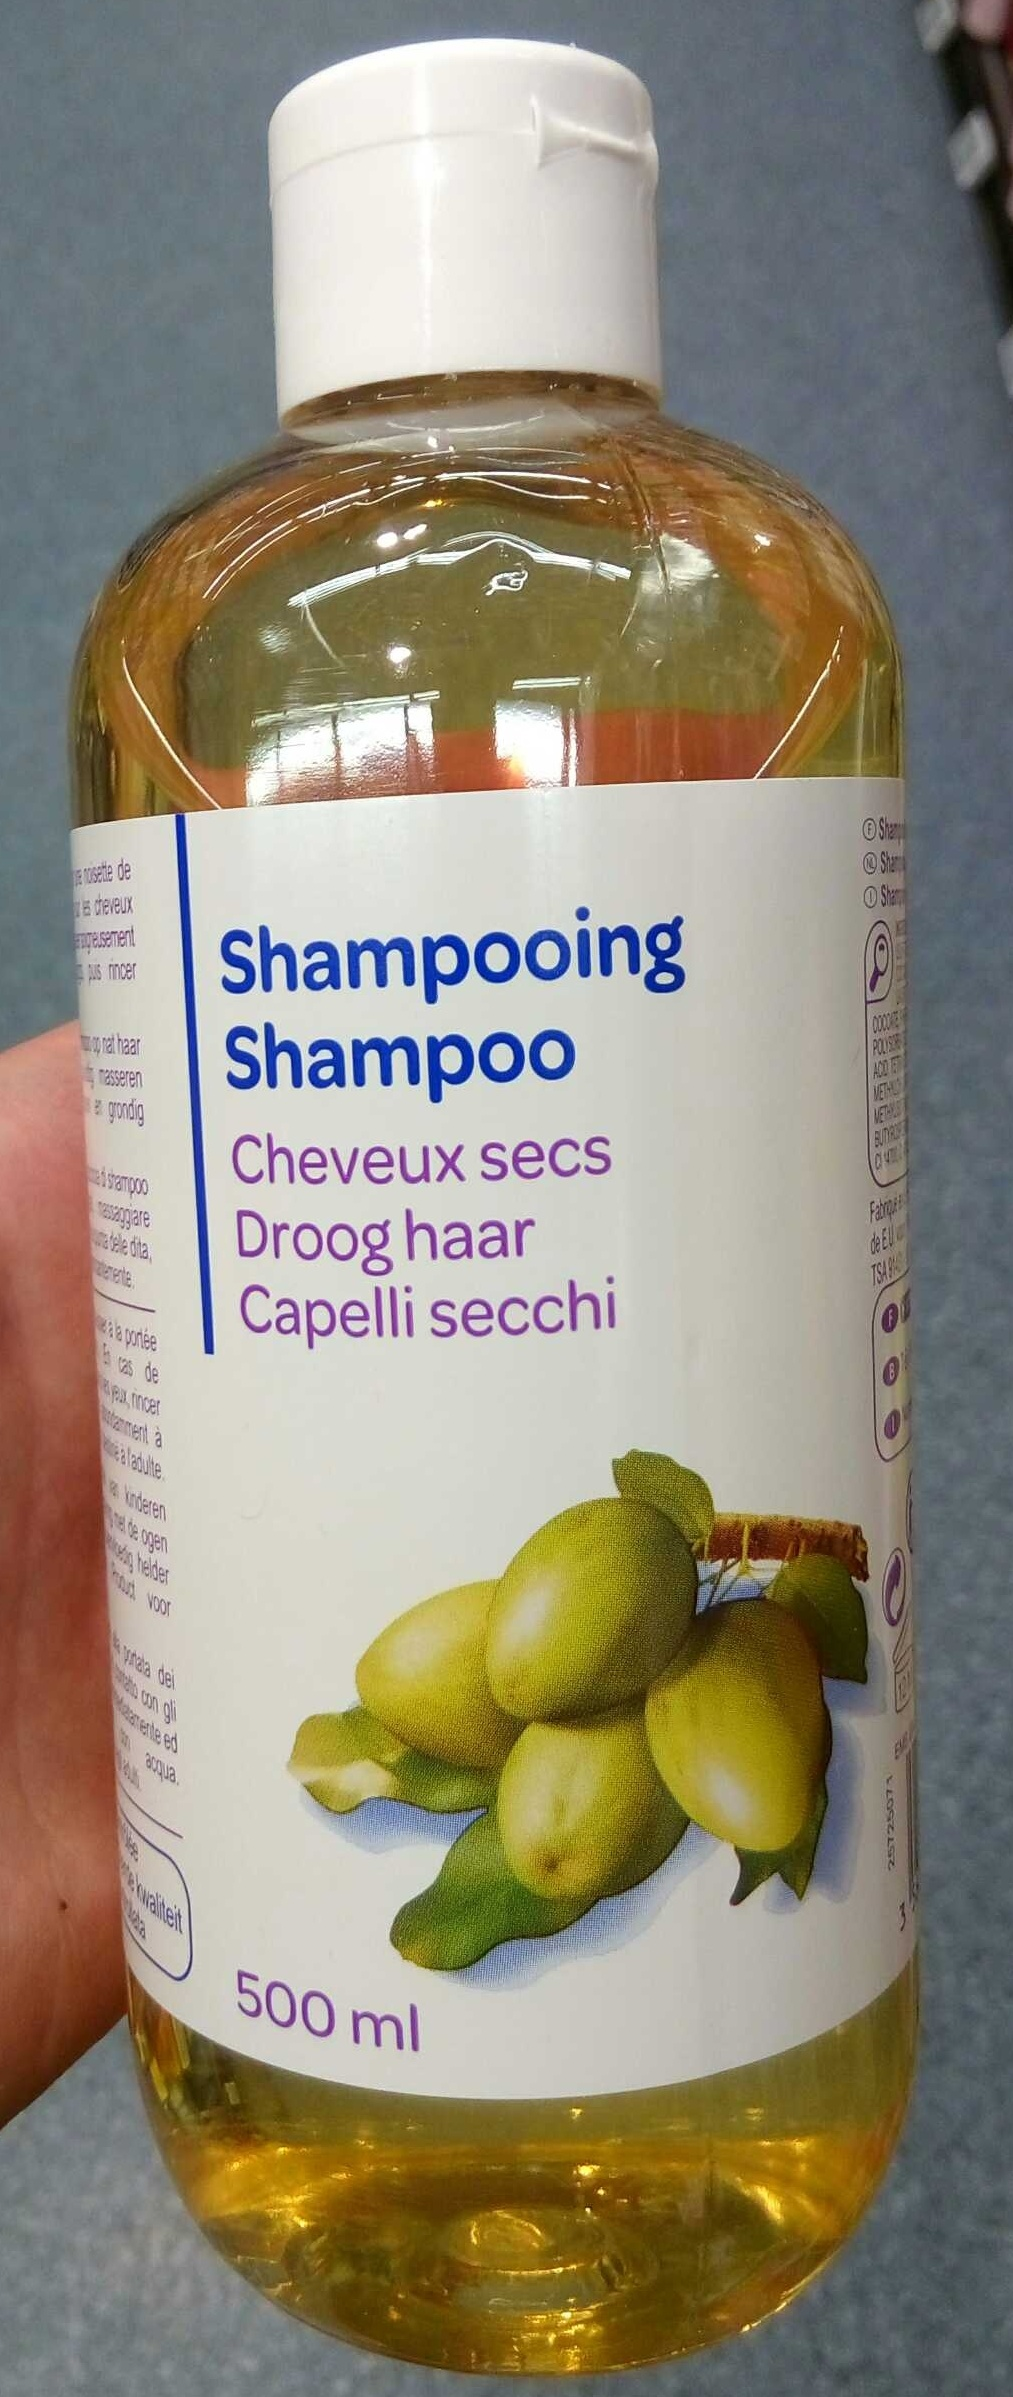 Shampooing Cheveux secs - Product - fr